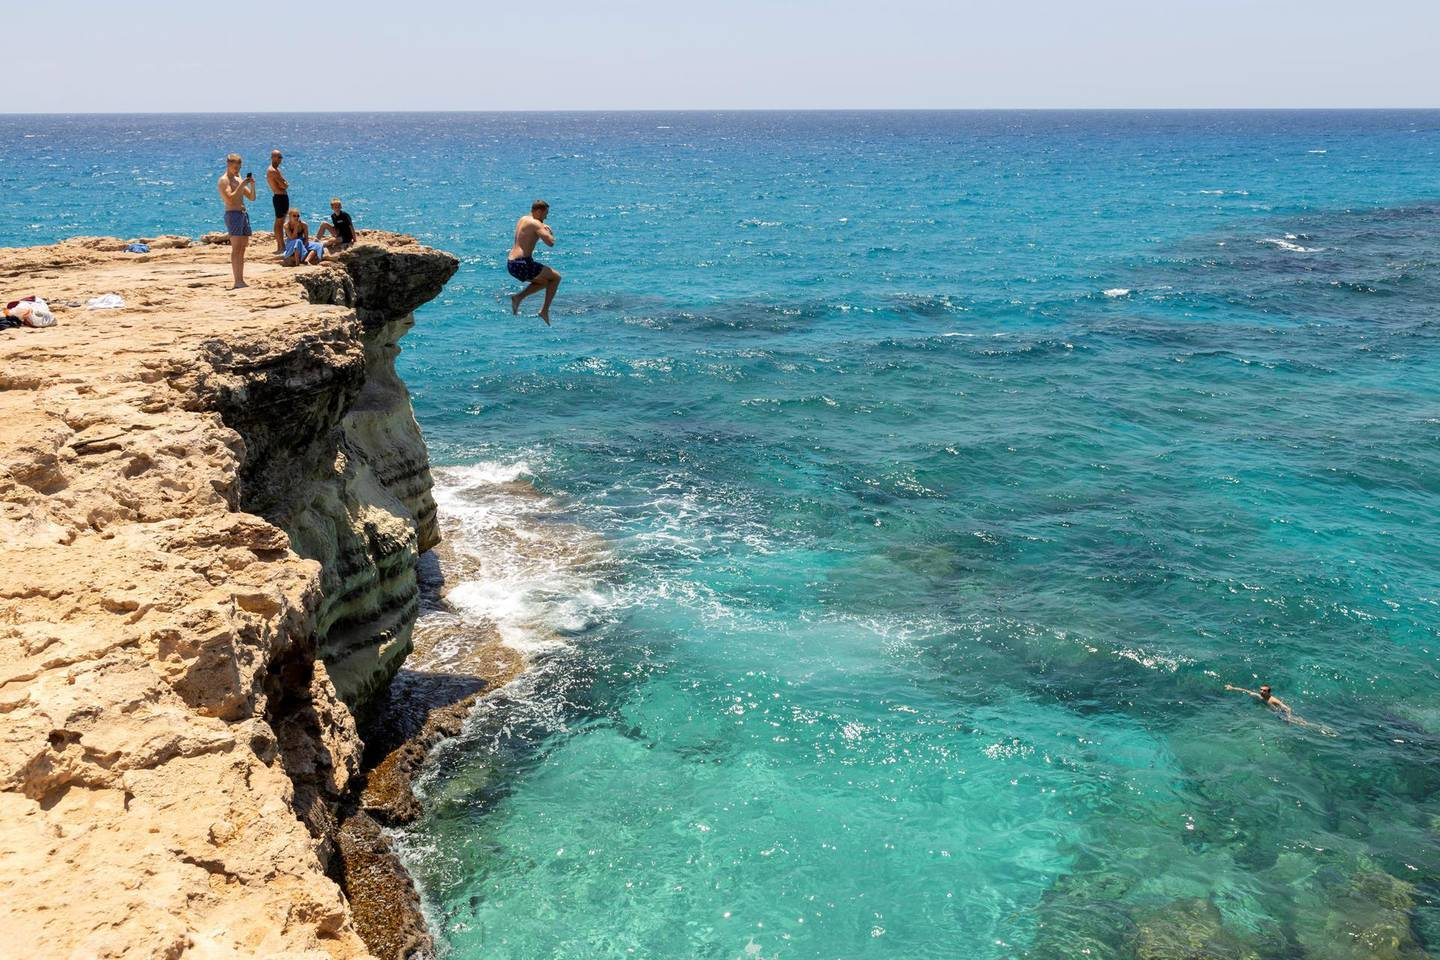 AYIA NAPA, CYPRUS - JULY 17 : The sea caves with the turquoise waters at Cape Greco on July 17, 2020 in Ayia Napa, Cyprus. Cape Greco or Cavo Greco is a headland in the southeastern part of the island of Cyprus. It is at the southern end of Famagusta Bay and forms part of Ayia Napa Municipality. Located between the towns of Ayia Napa and Protaras, both of which are popular tourist resorts. It is frequently visited by many tourists for its natural beauty. Cape Greco is a National Forest Park with unique flora and fauna and is protected nature park. (Photo by Athanasios Gioumpasis/Getty Images)